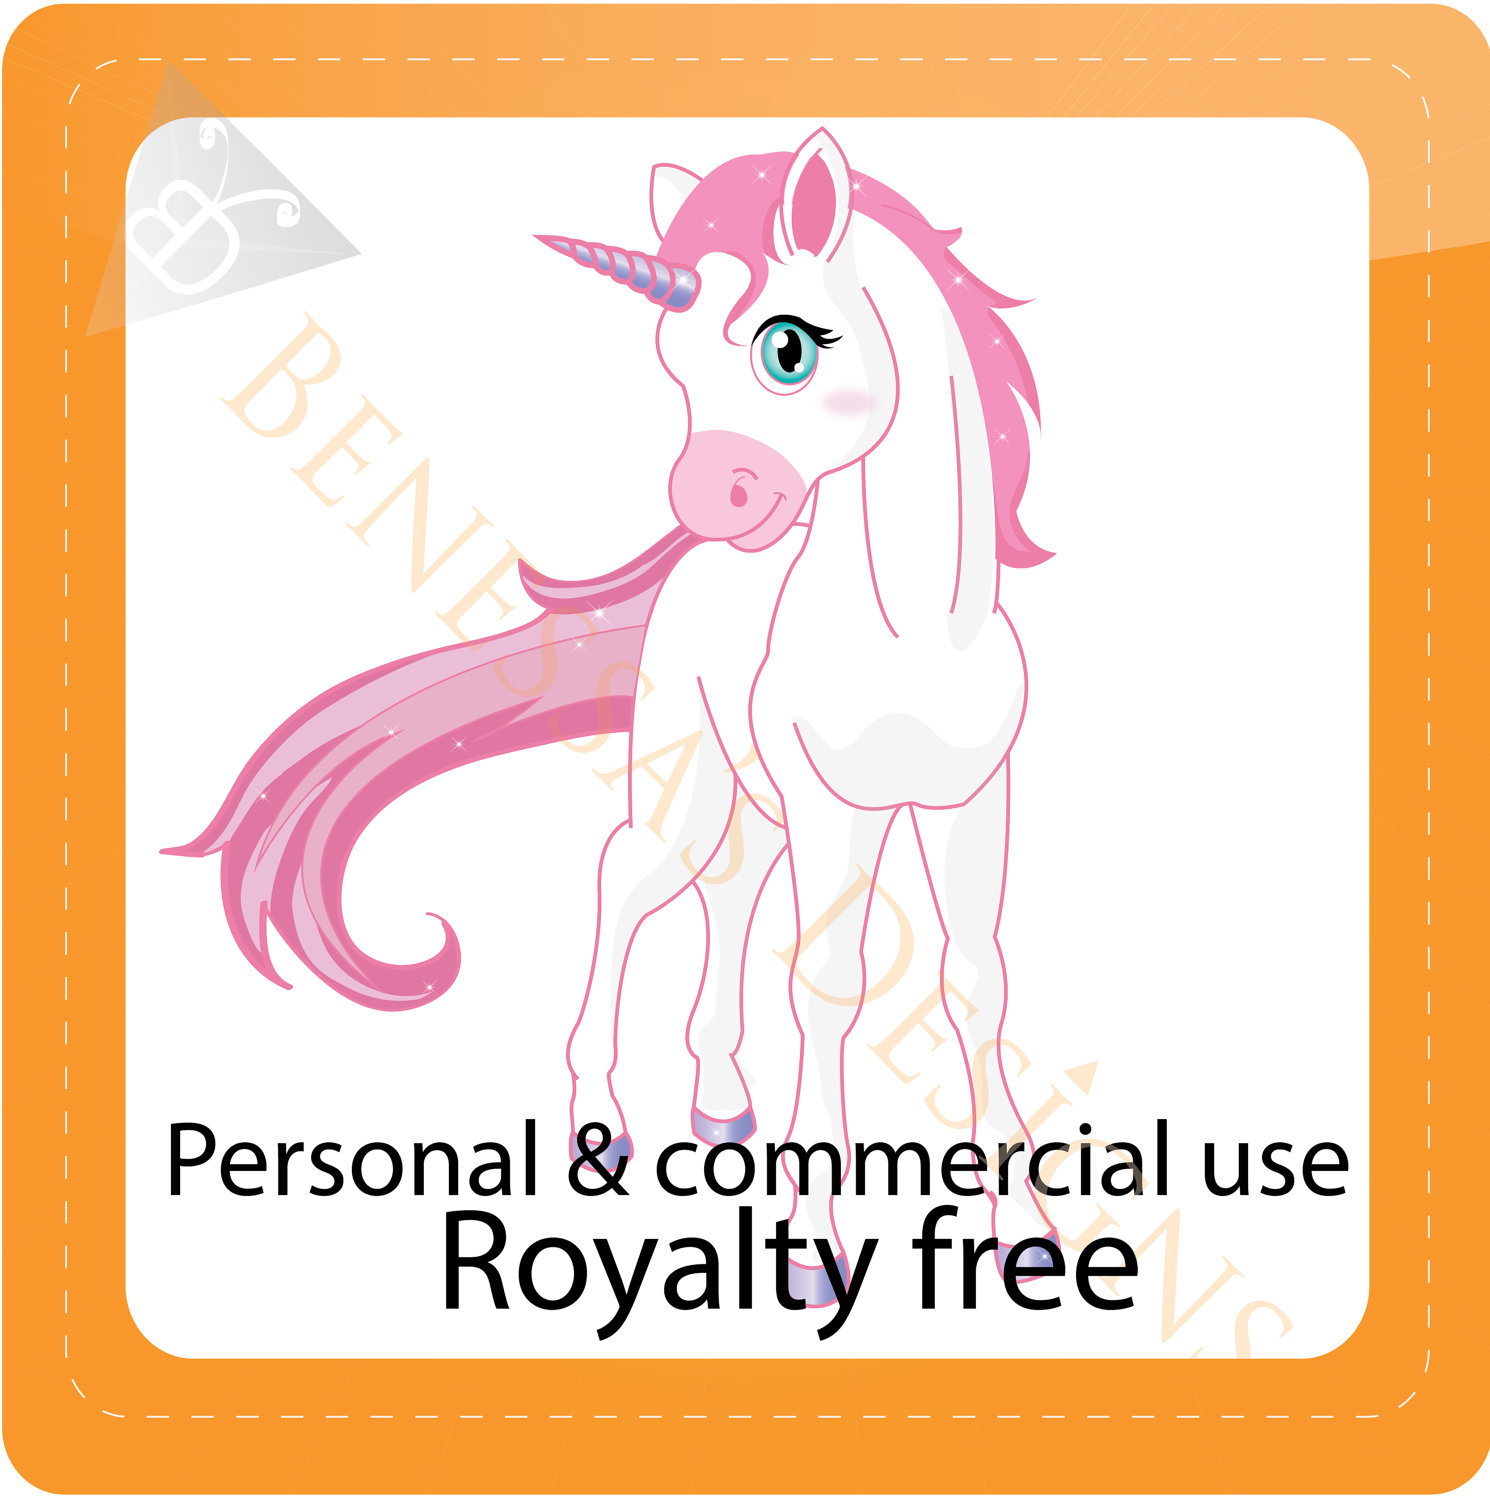 Clipart free for commercial use banner free stock Clipart royalty free commercial use - ClipartFox banner free stock